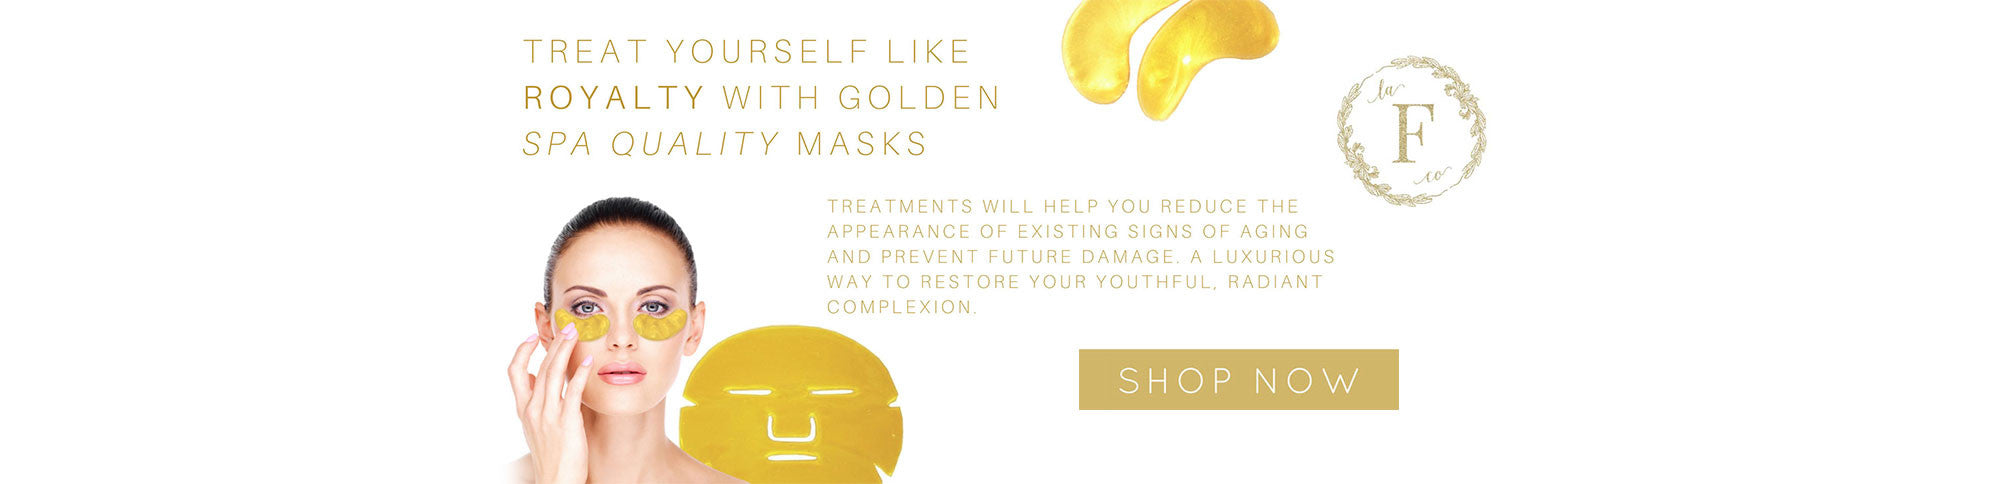 Treat yourself like Royalty with golden SPA quality mask